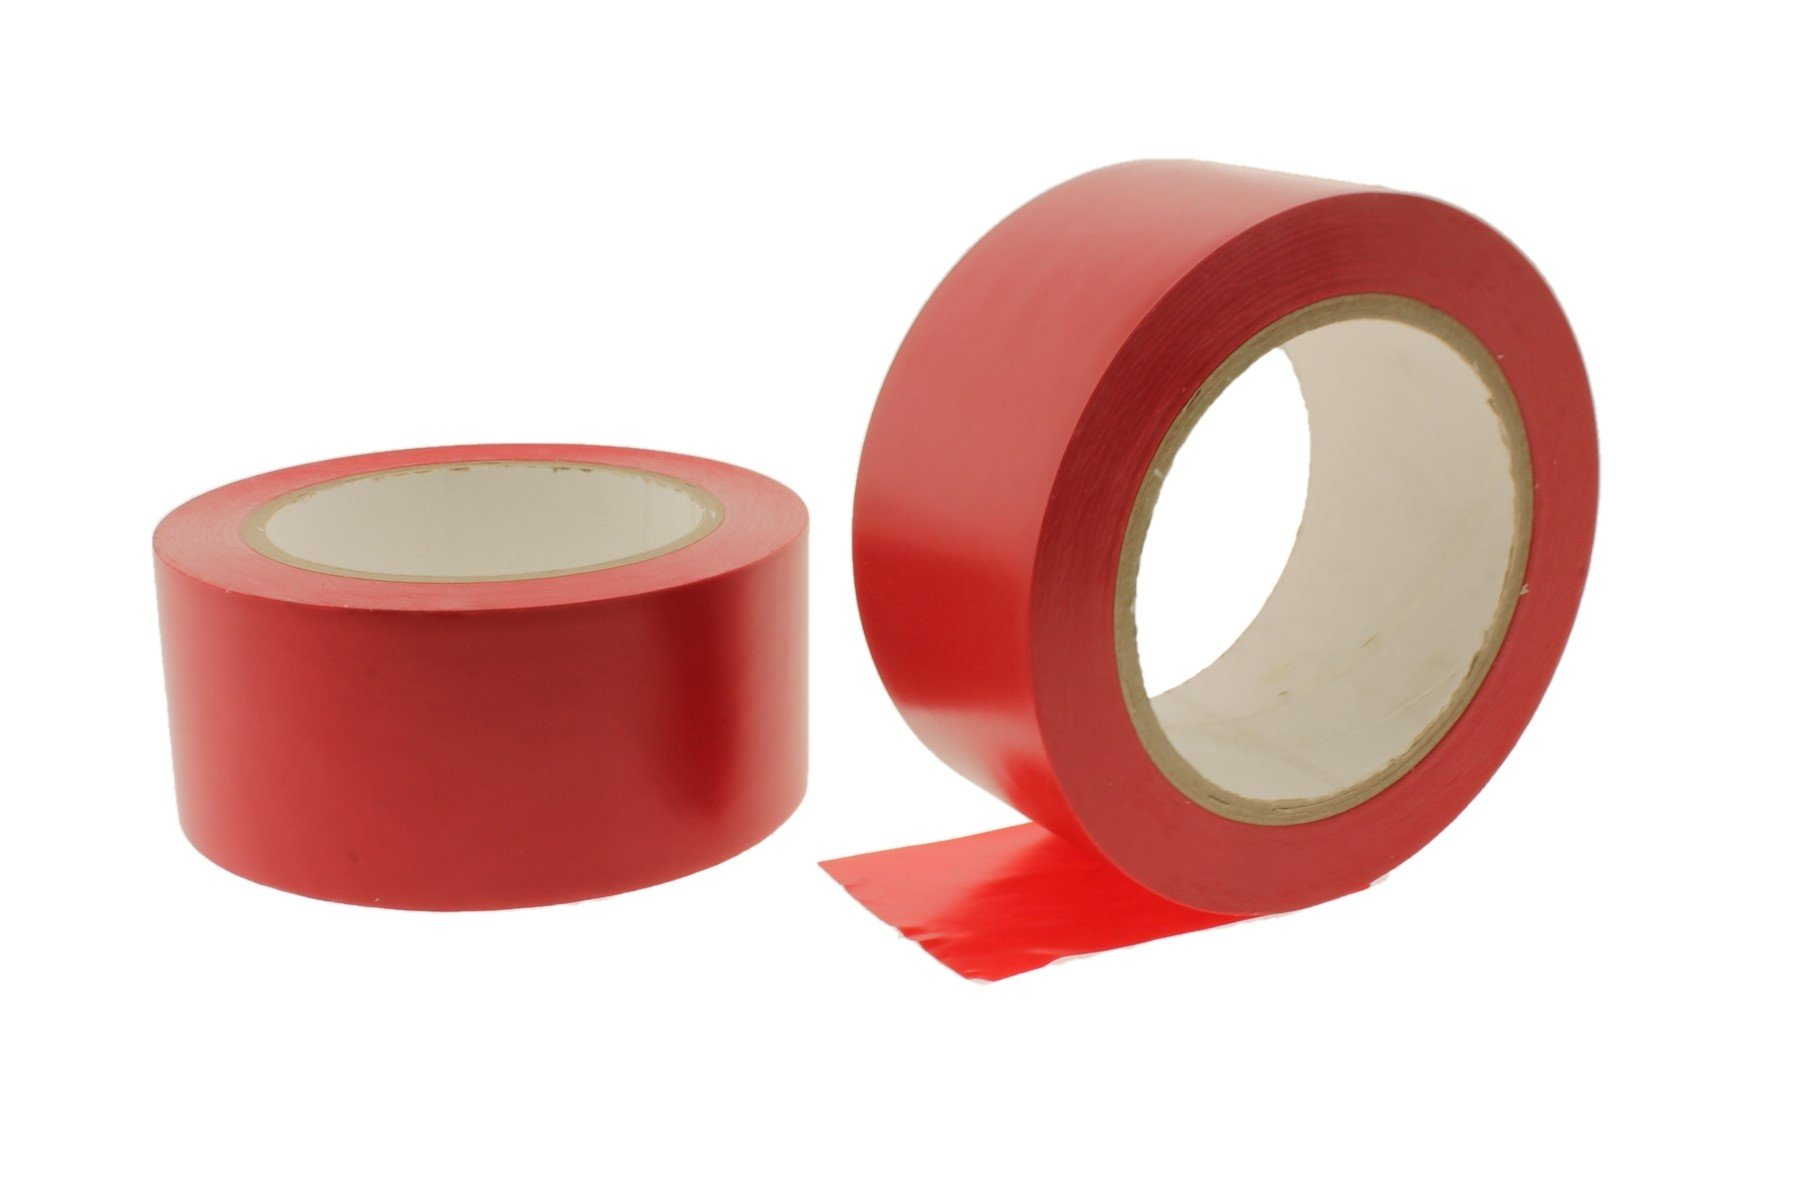 2pk 2'' RED Durable Rubber Adhesive PVC Vinyl Sealing Coding Warning OSHA Caution Marking Safety Electrical Removable Floor Tape (1.88IN 48MM) 36 yard 7 mil